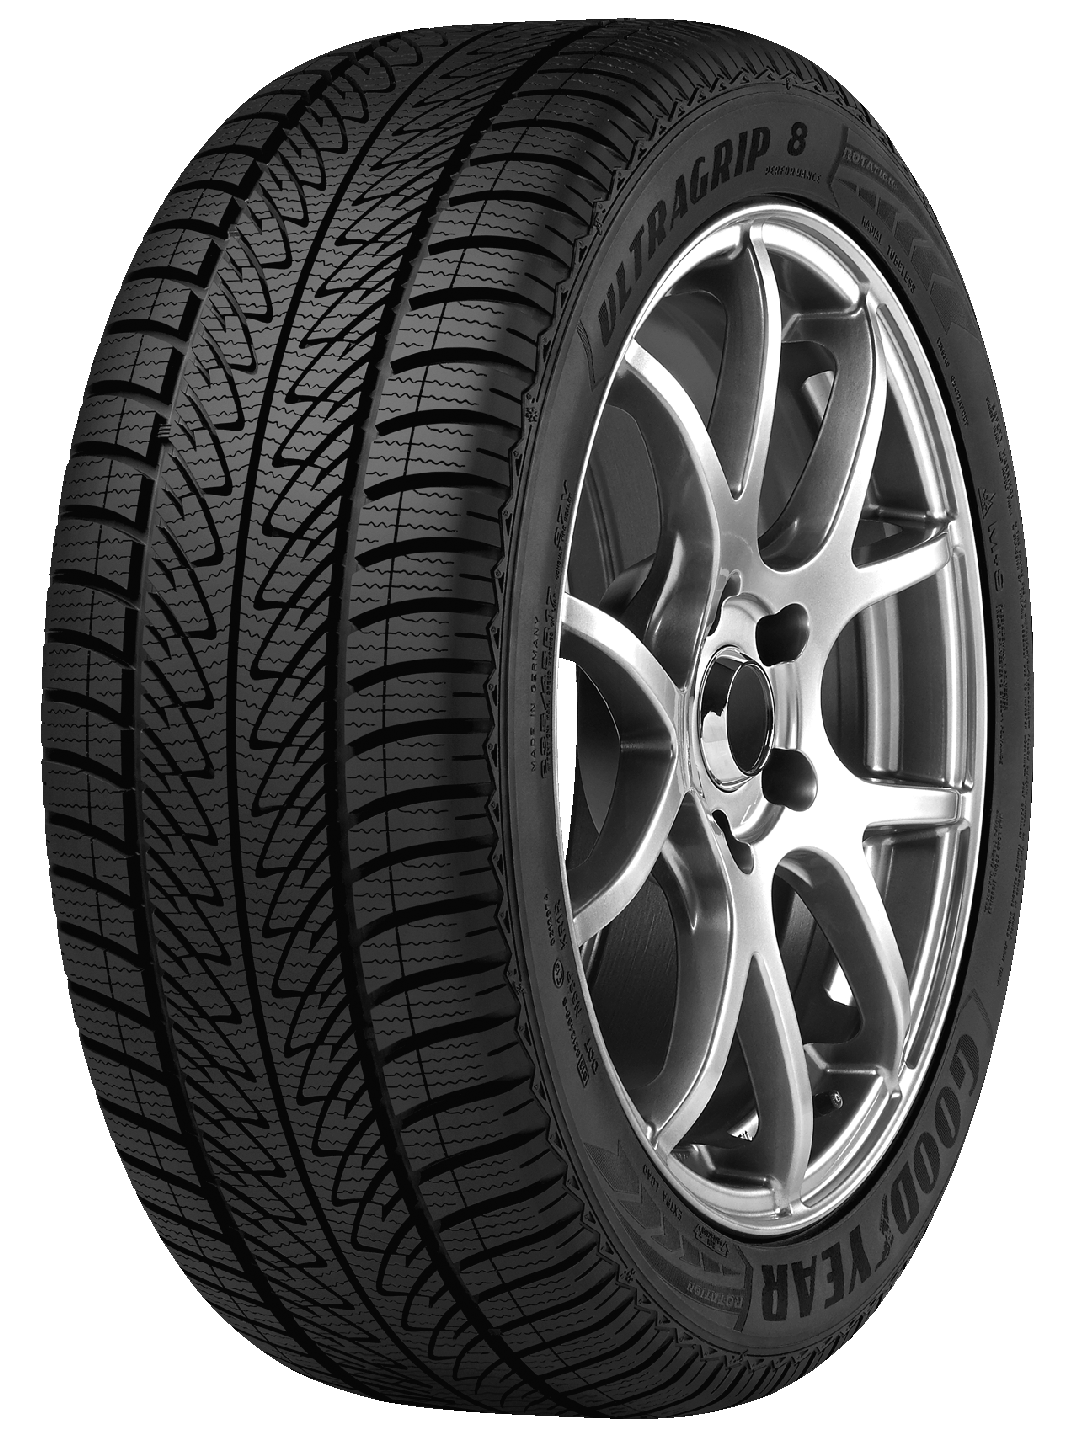 goodyear ultragrip 8 perf 285 45 r 20 appalacian tire products service appalacian tire. Black Bedroom Furniture Sets. Home Design Ideas